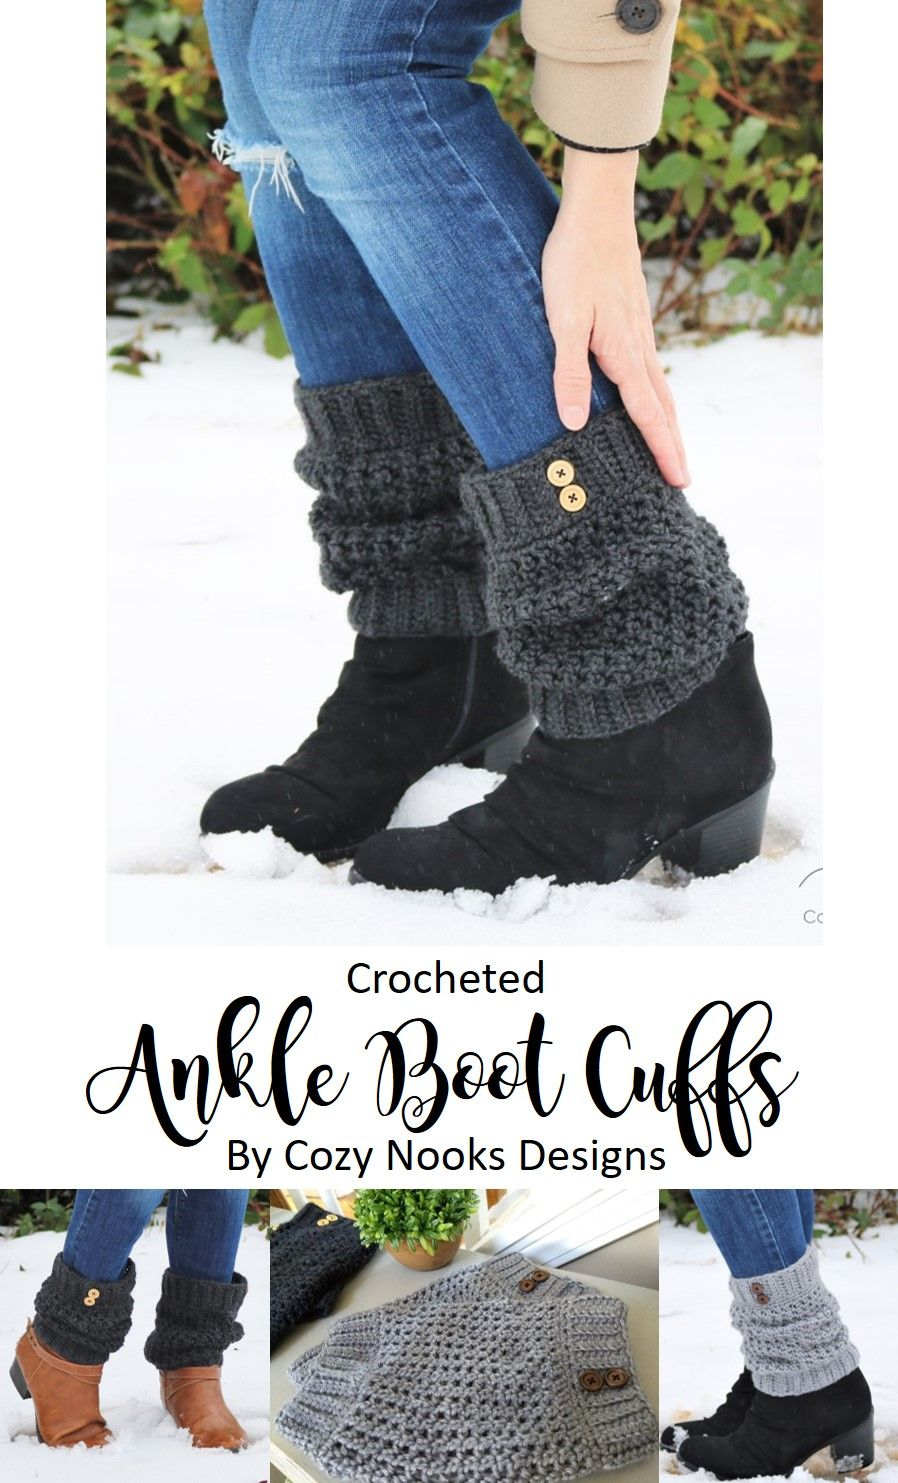 Slouchy Ankle Boot Cuffs